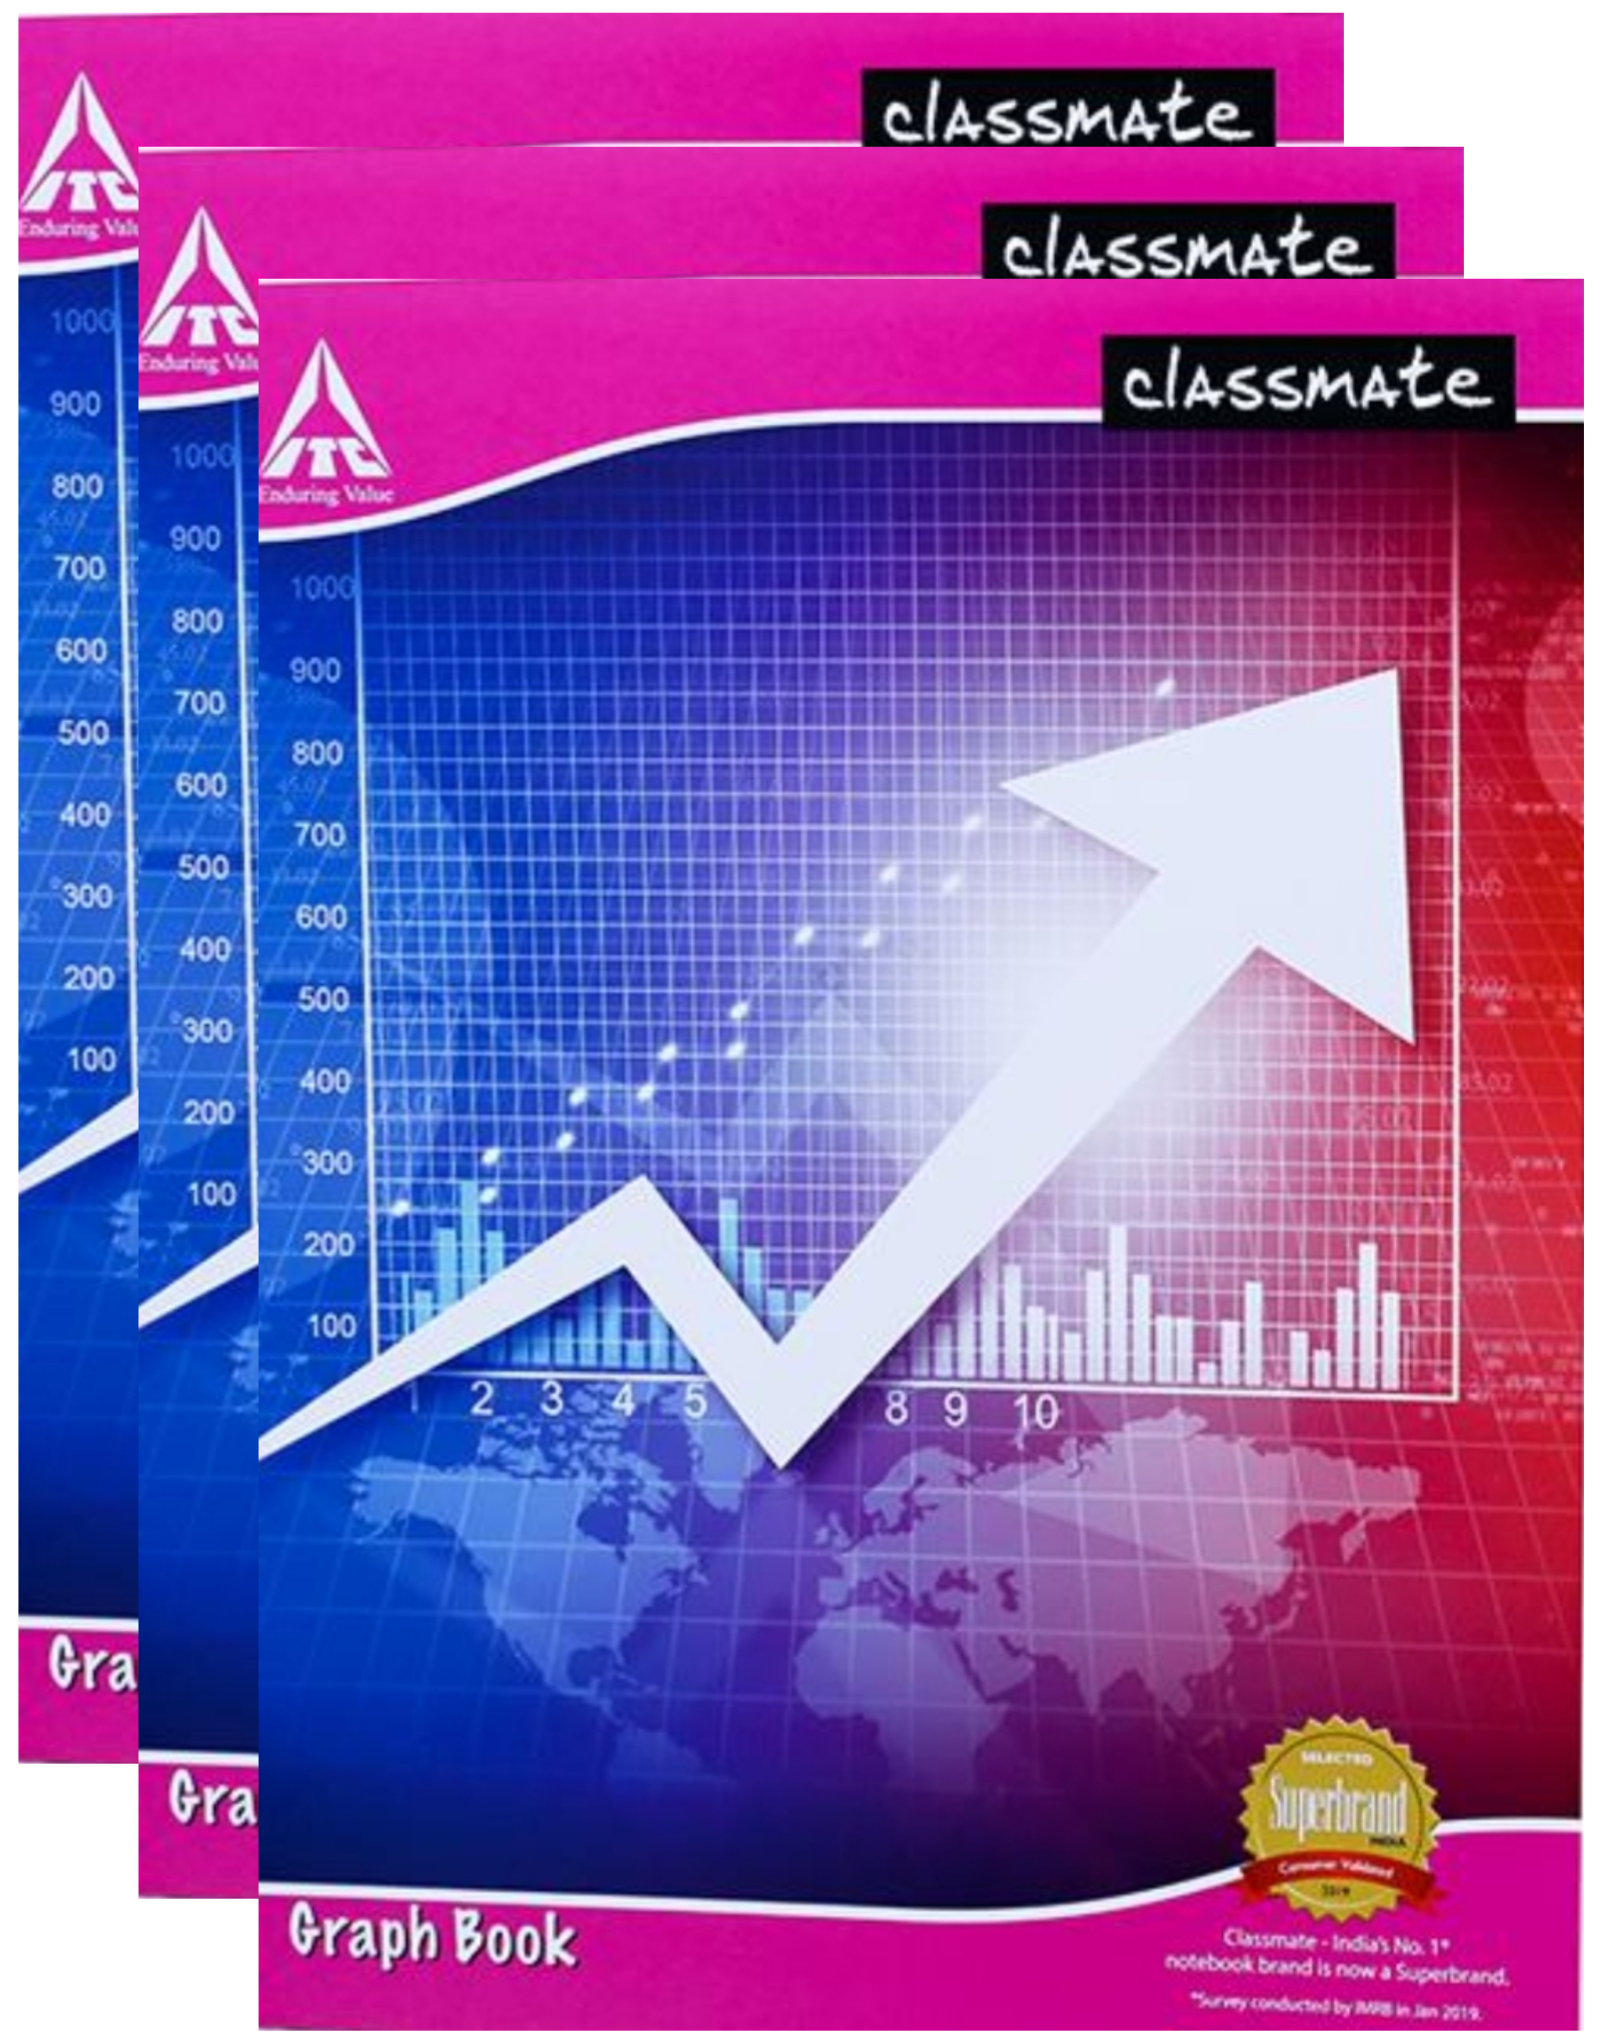 Classmate Graph Book 32 Pages Soft Cover 28X22 cm Square/Single Line Pack of 4